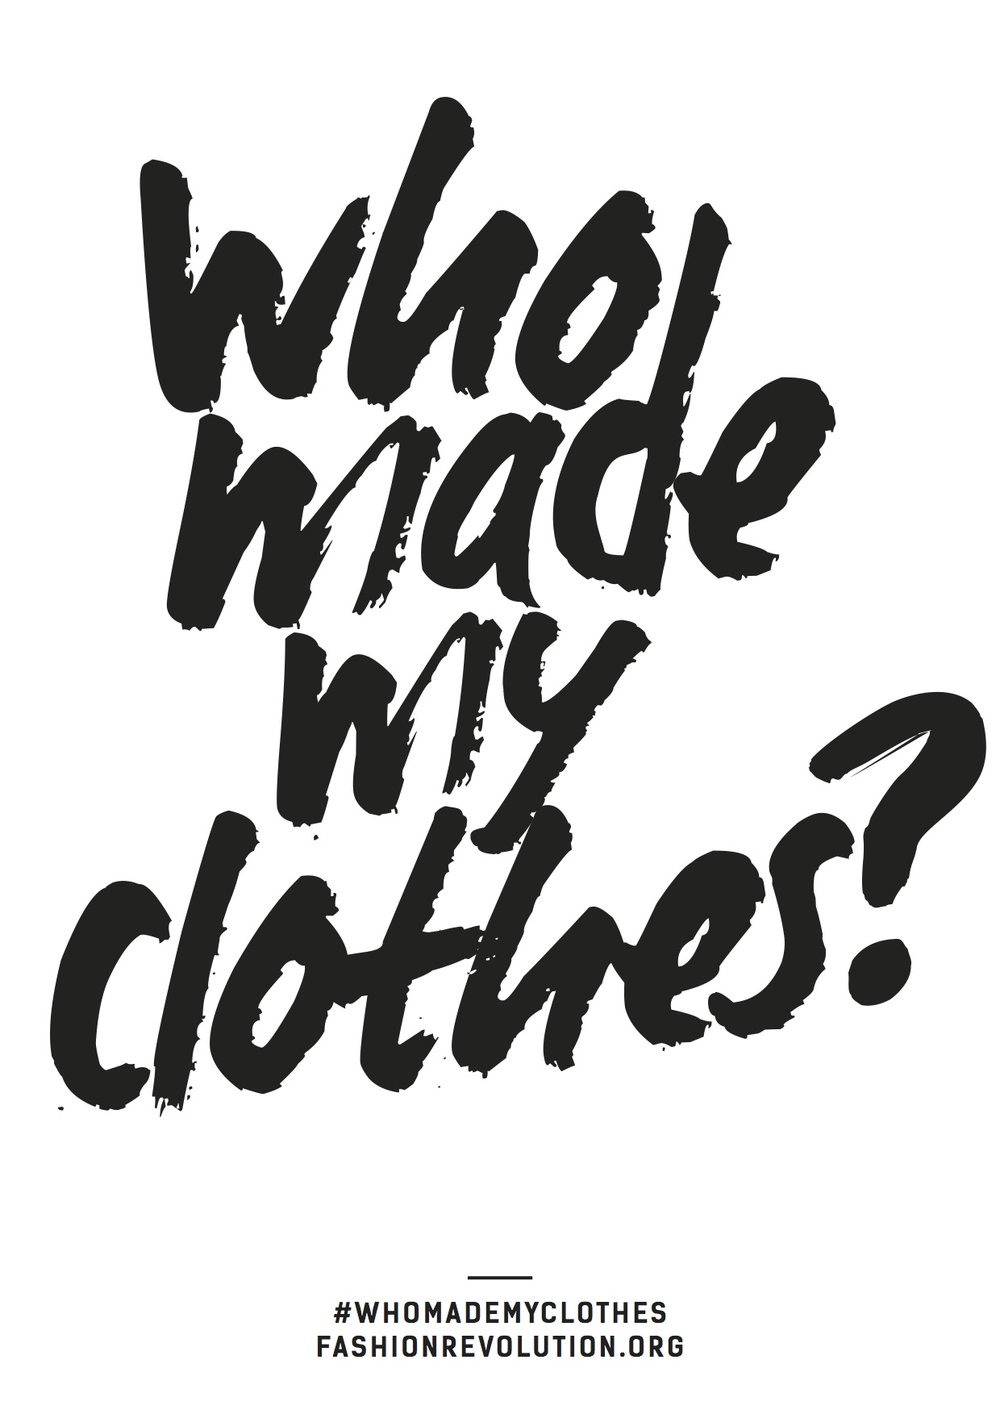 Source: FashionRevolution.org